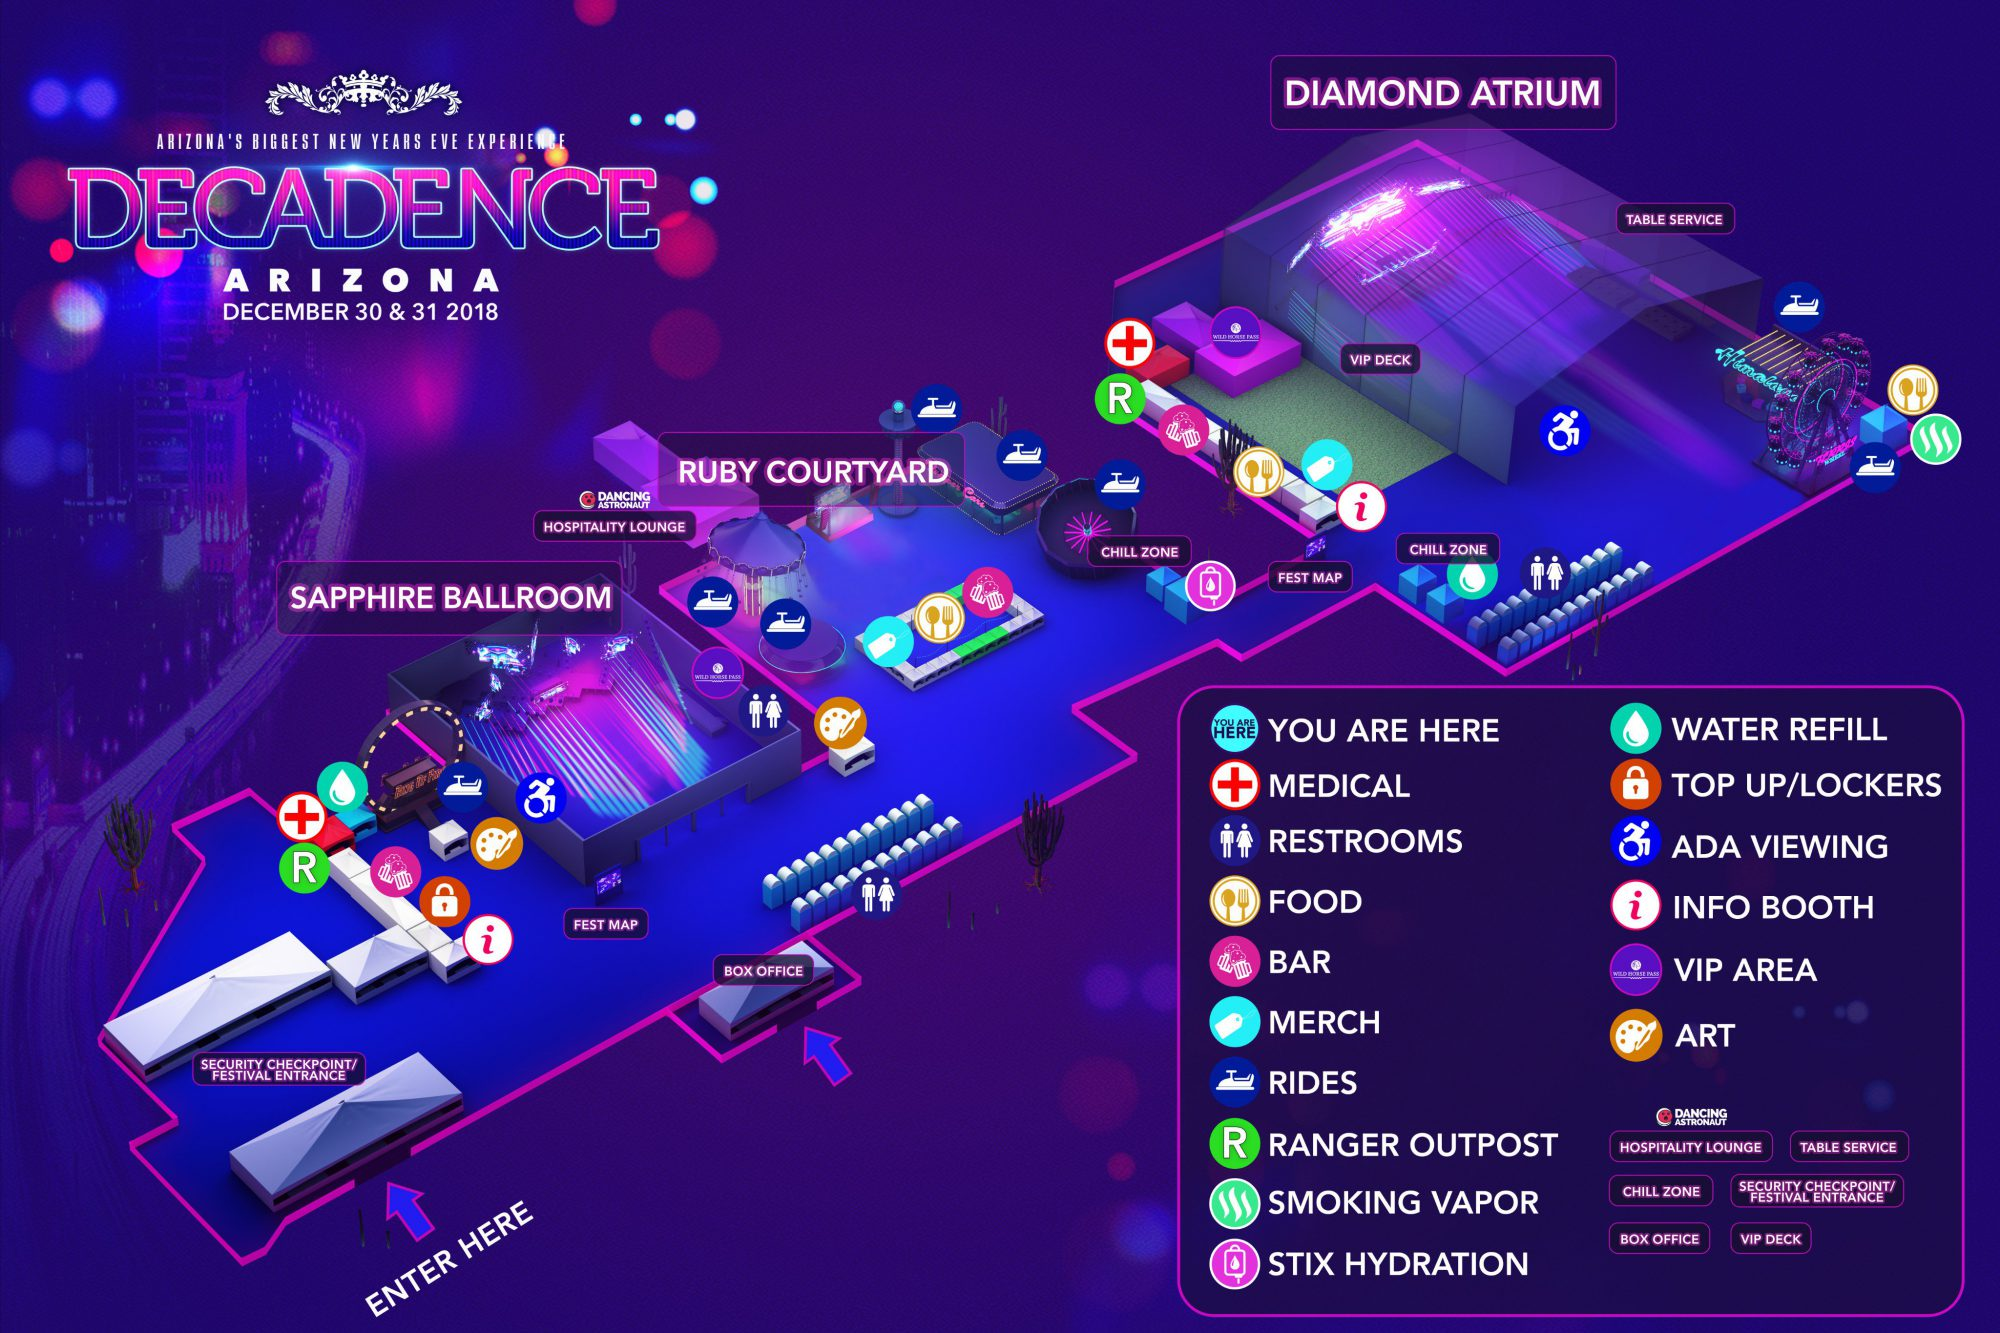 Decadence AZ 2018 Festival Map